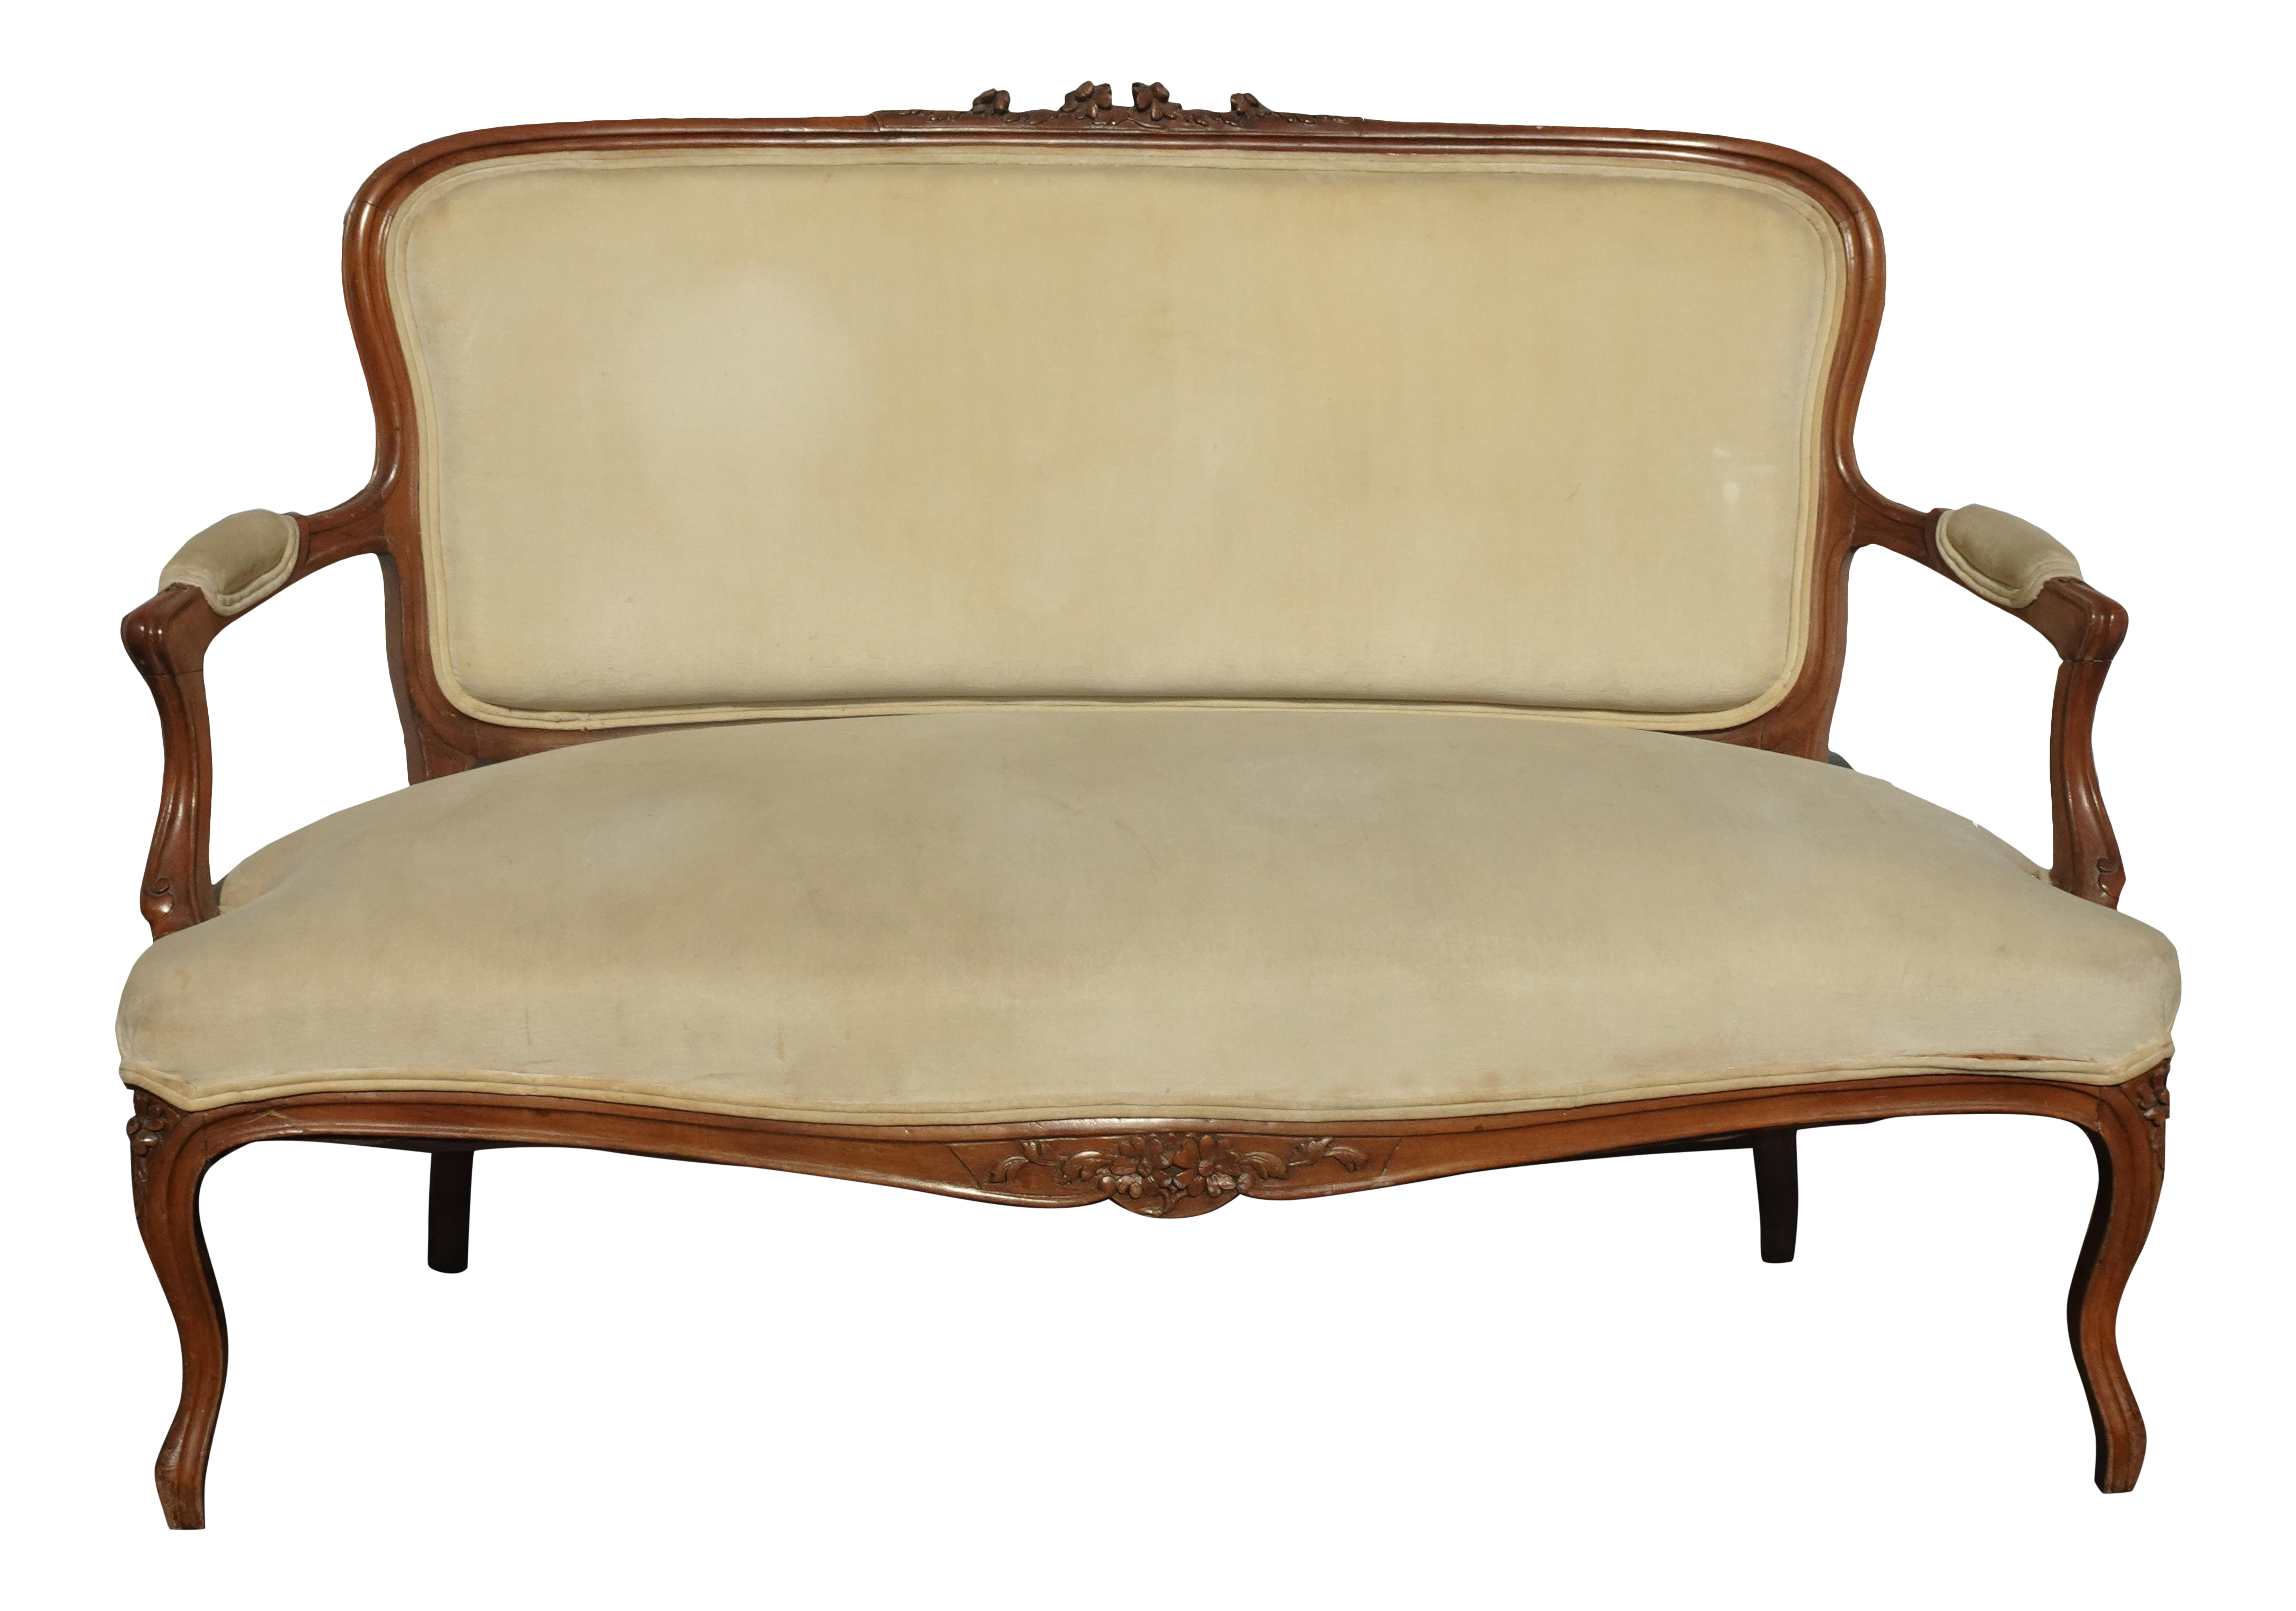 Vintage French Provincial Country Gold Velvet Settee Loveseat Rococo Louis Xvi Chairish